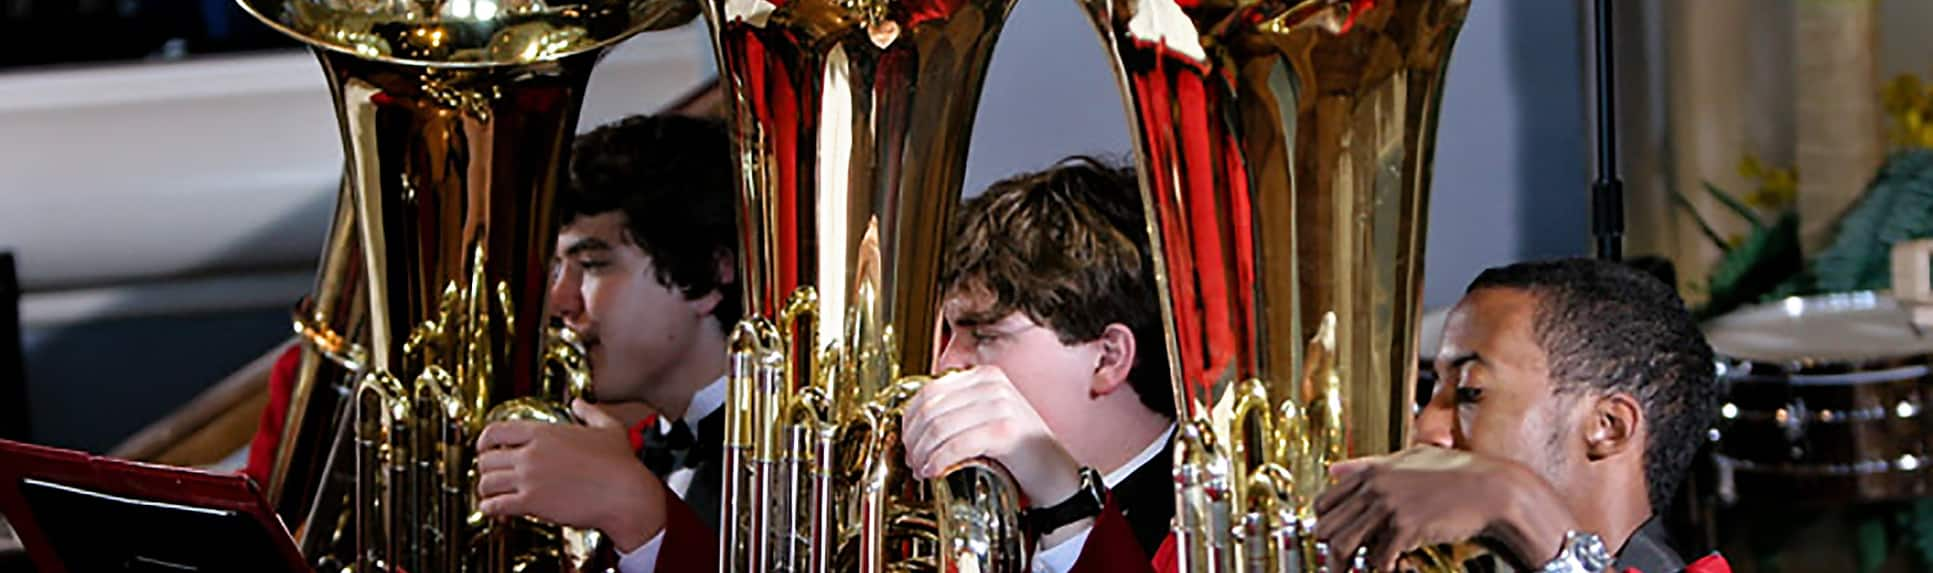 Young adults holding brass instruments and reading sheet music